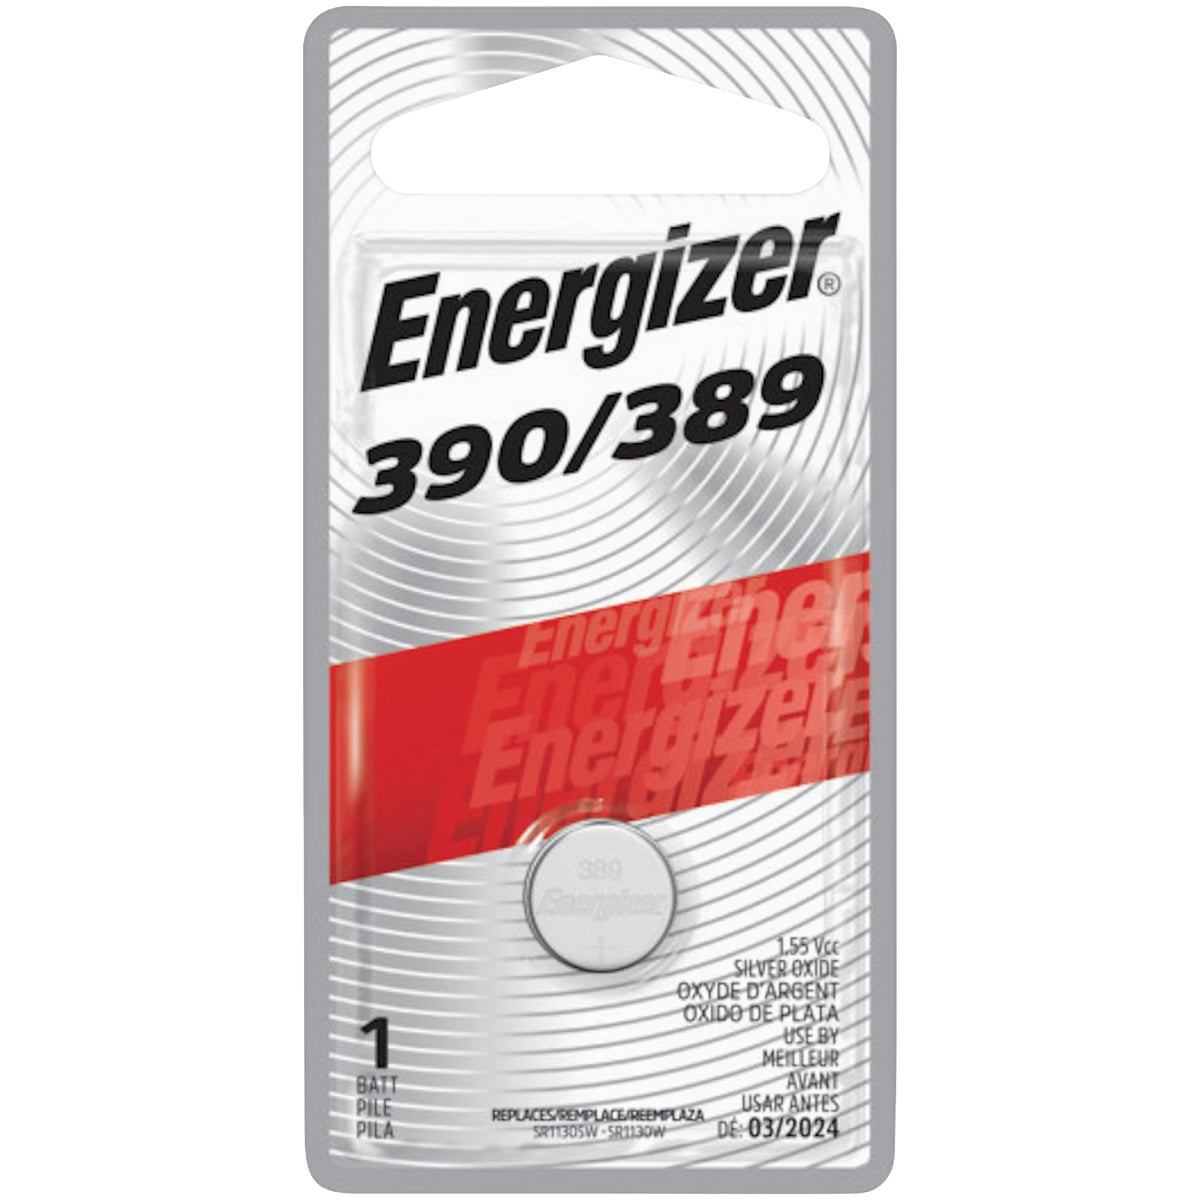 1.6V WATCH BATTERY - 389BPZ by Energizer